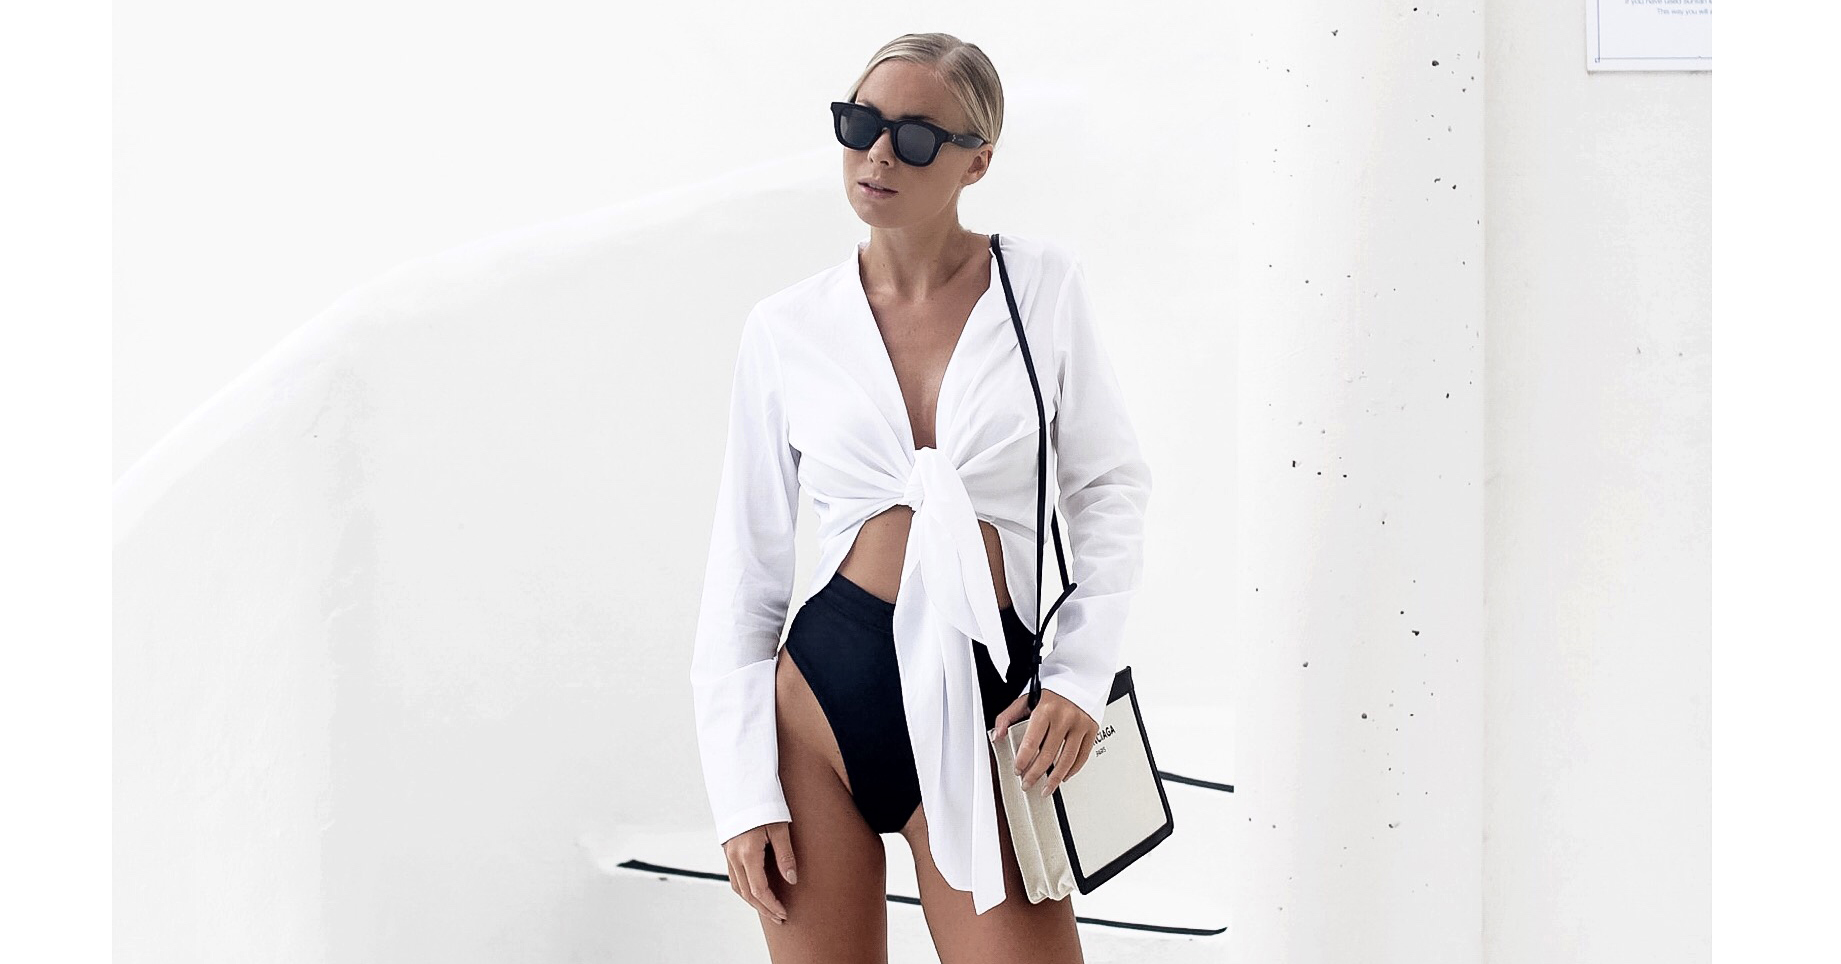 15 Casual-Chic Beach Outfits To Try This Swimsuit Season: Fashion blogger 'Victoria Tornegren' wearing a white tie front crop shirt, a black cutout swimsuit, black slide sandals, a colorblock shoulder bag and black square sunglasses. Beach outfit, pool outfit, summer outfit, vacation outfit, getaway outfit, swimsuit outfit, swimwear outfit, summer fashion trends, summer fashion trends 2017, swimwear trends 2017.